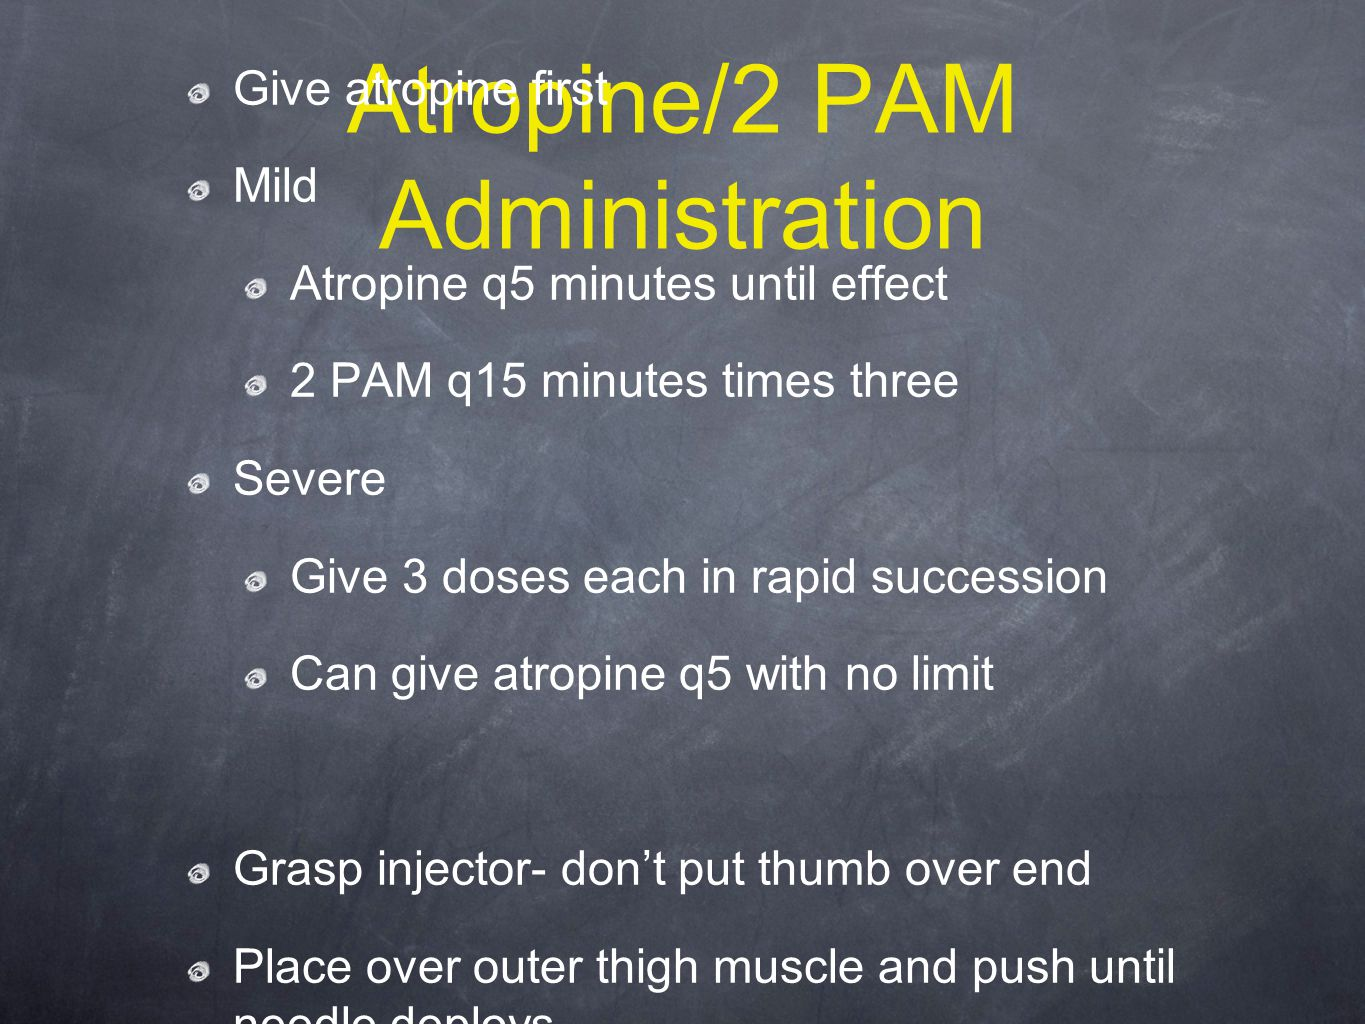 Atropine/2 PAM Administration Give atropine first Mild Atropine q5 minutes until effect 2 PAM q15 minutes times three Severe Give 3 doses each in rapid succession Can give atropine q5 with no limit Grasp injector- don't put thumb over end Place over outer thigh muscle and push until needle deploys.